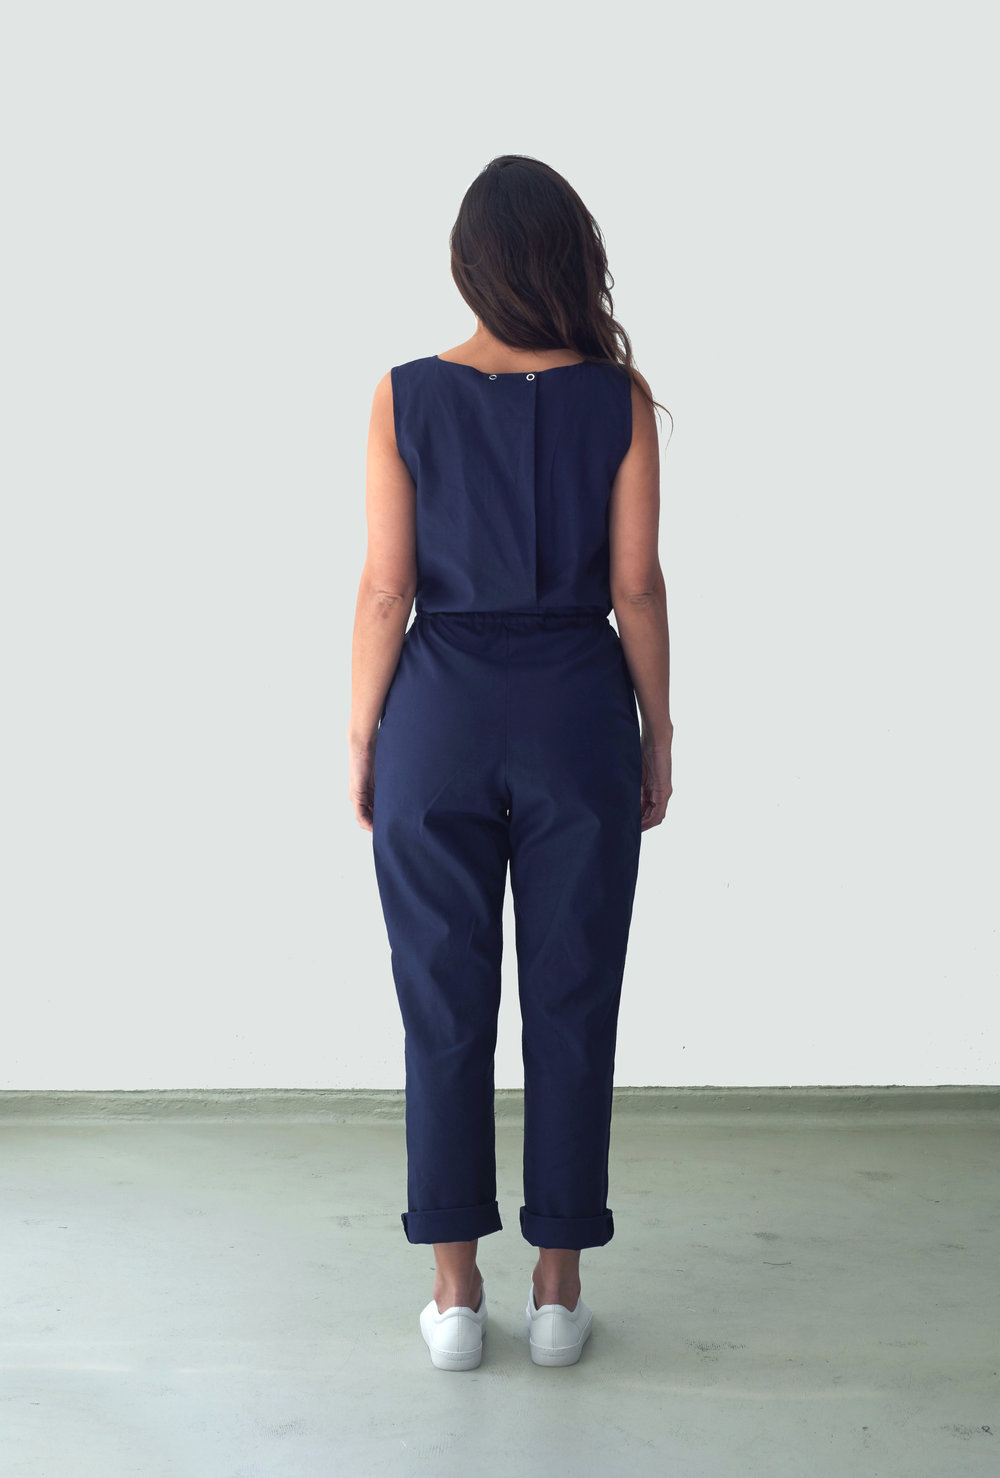 navy jumpsuit 2.jpg